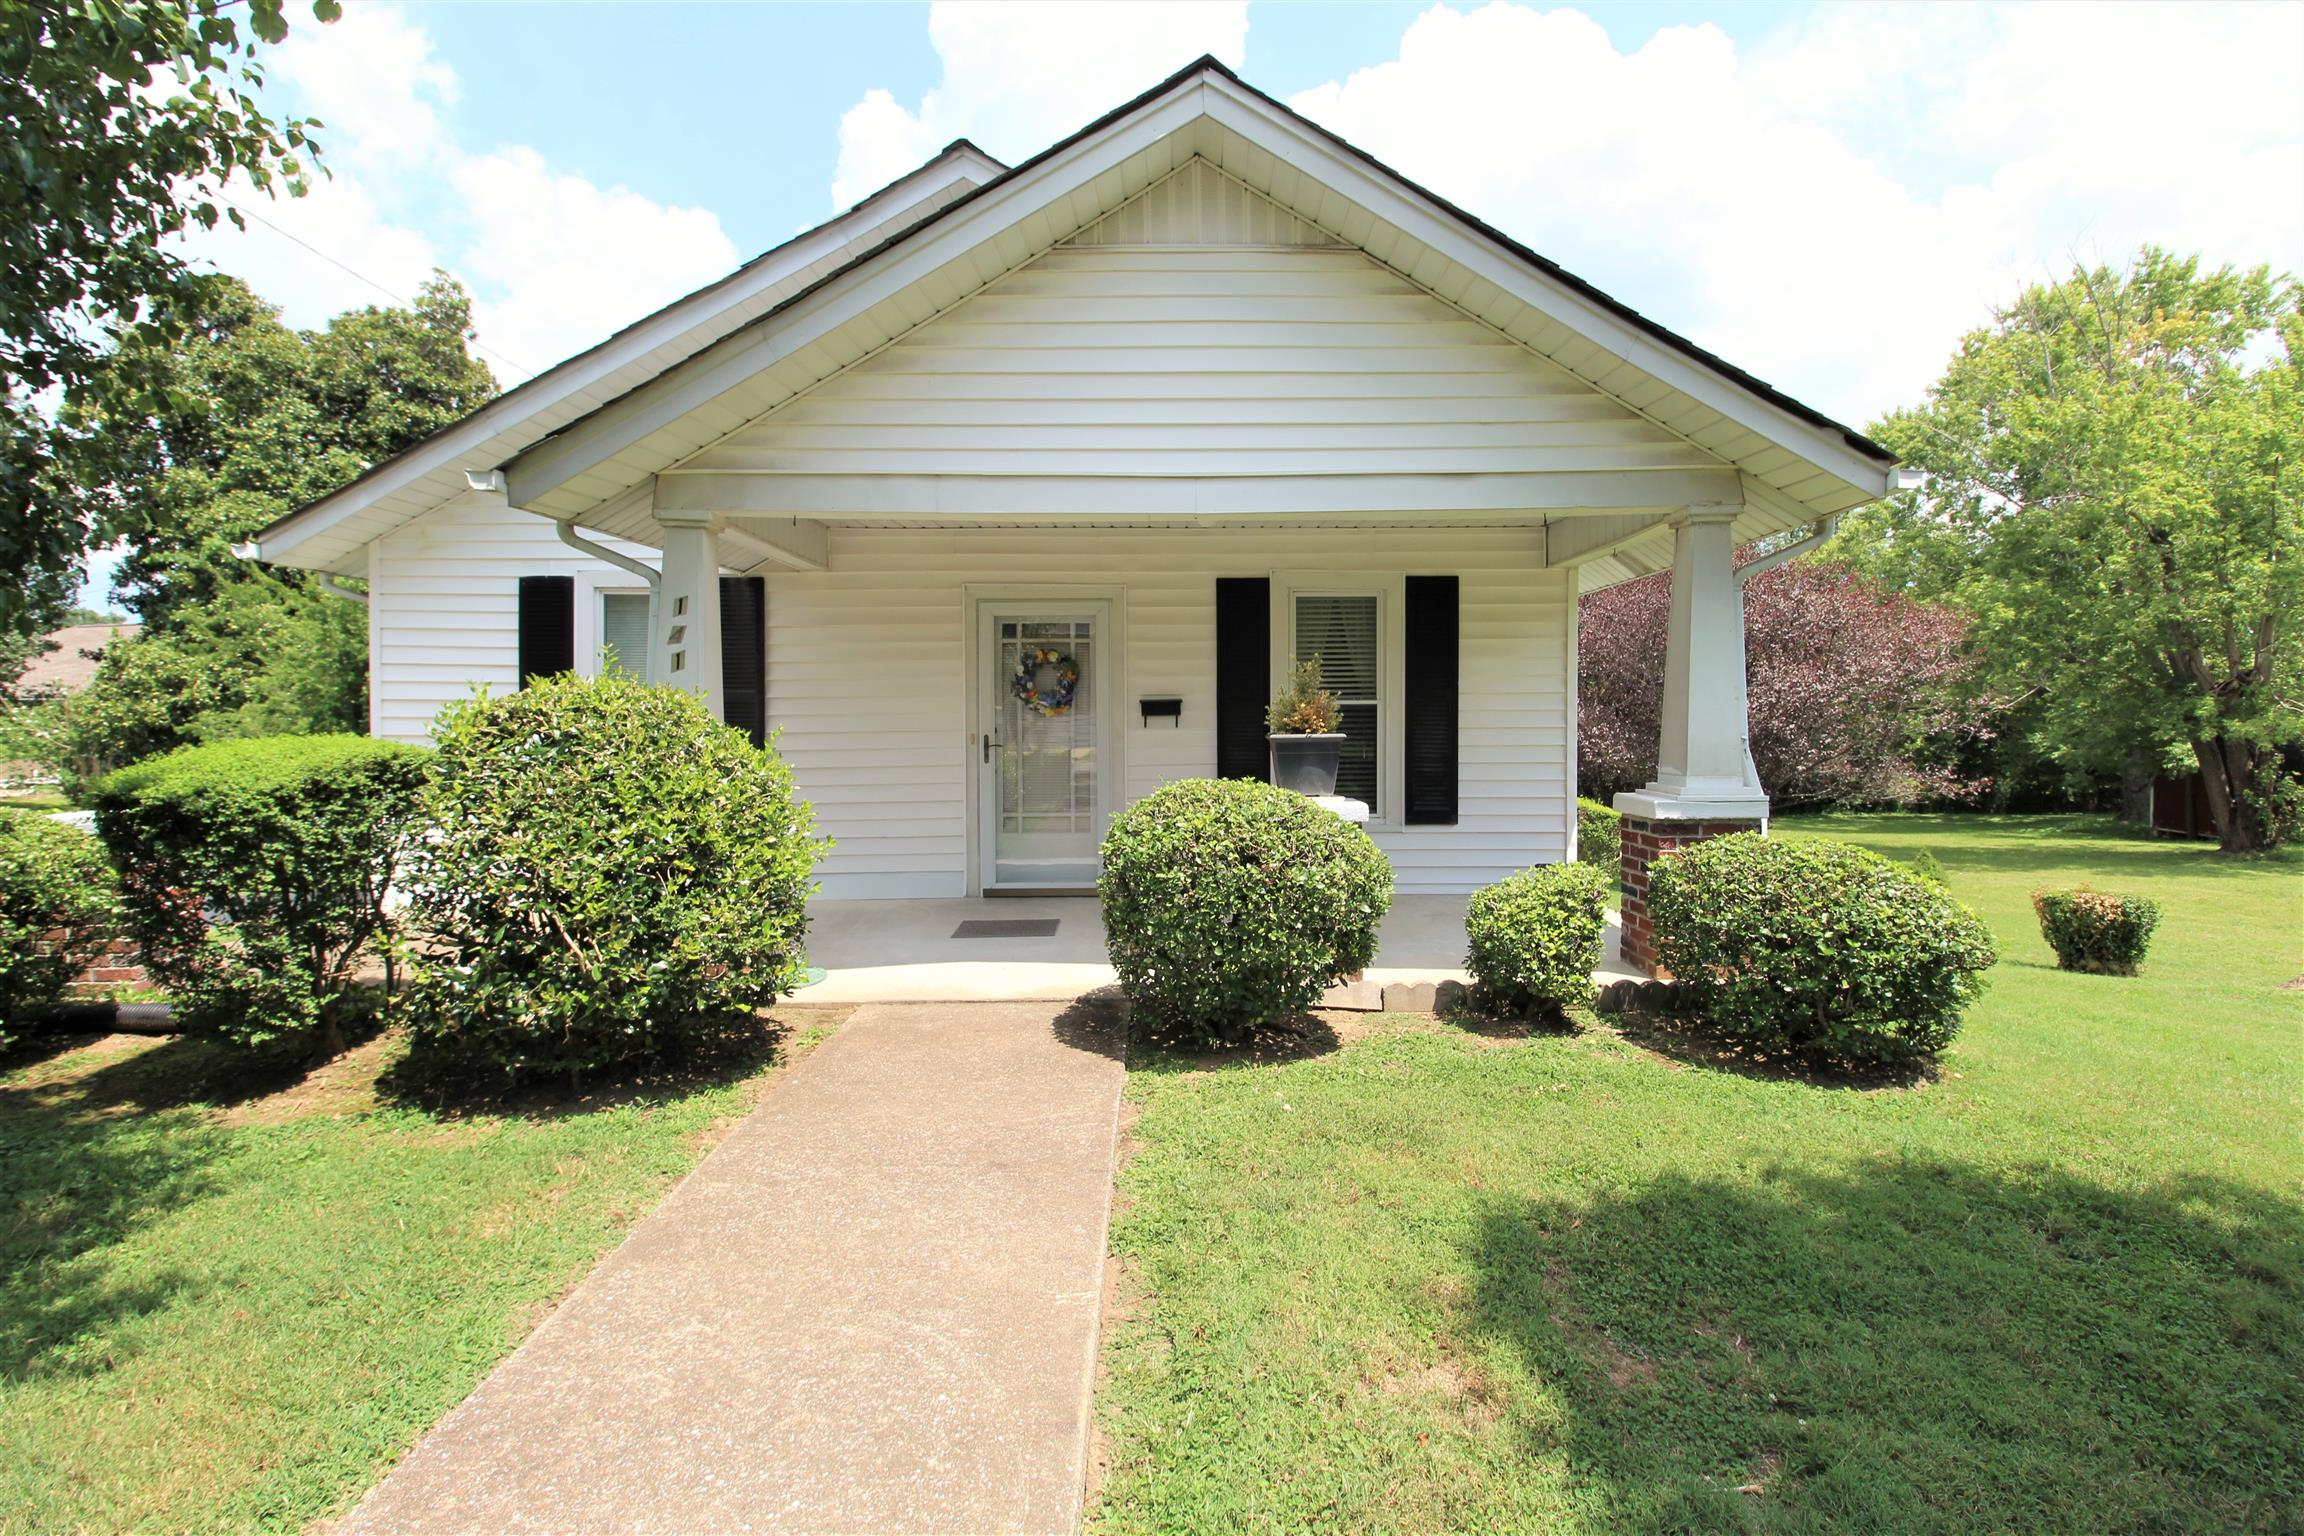 141 Cornwell Ave, Watertown, TN 37184 - Watertown, TN real estate listing